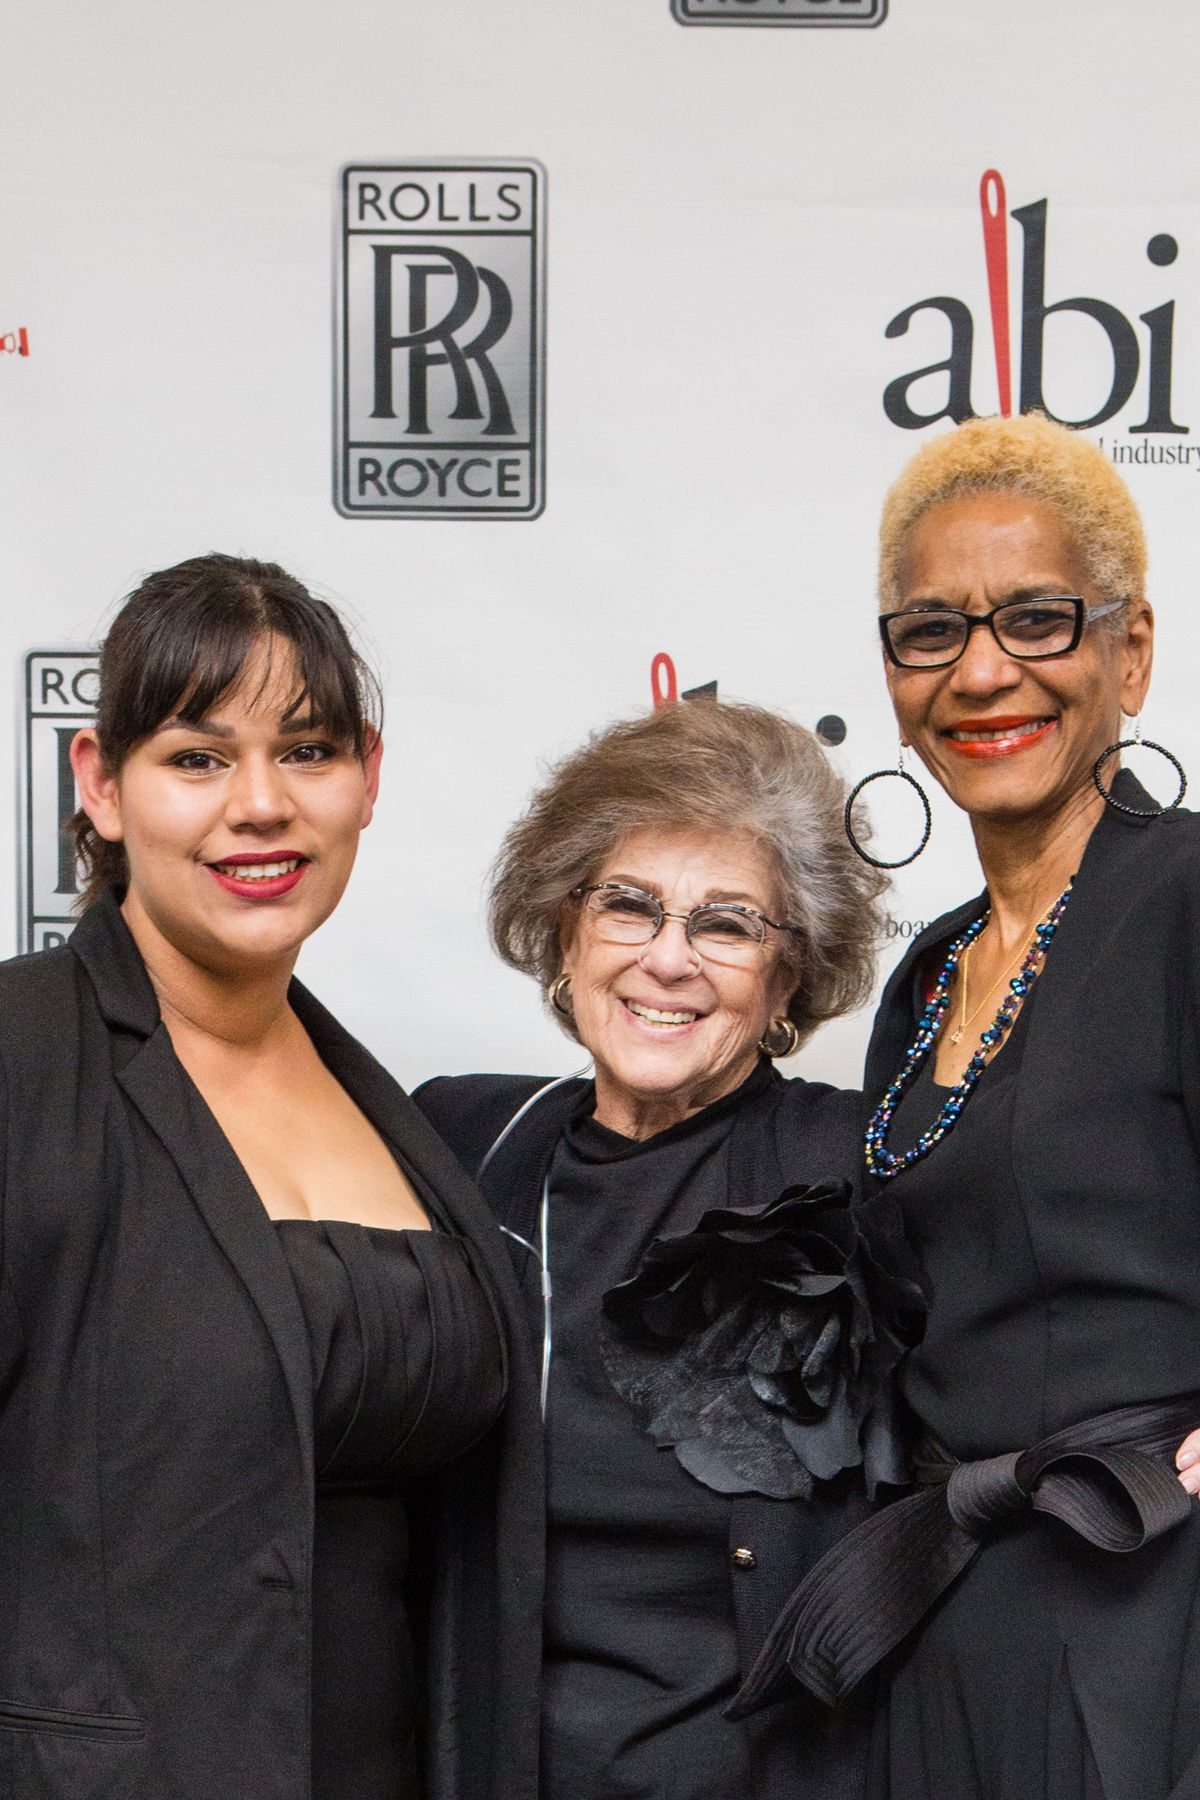 Marsha Brenner (center) with Ambar Campos (left) and Jacqueline Johnson of the Apparel Industry Board, Inc.